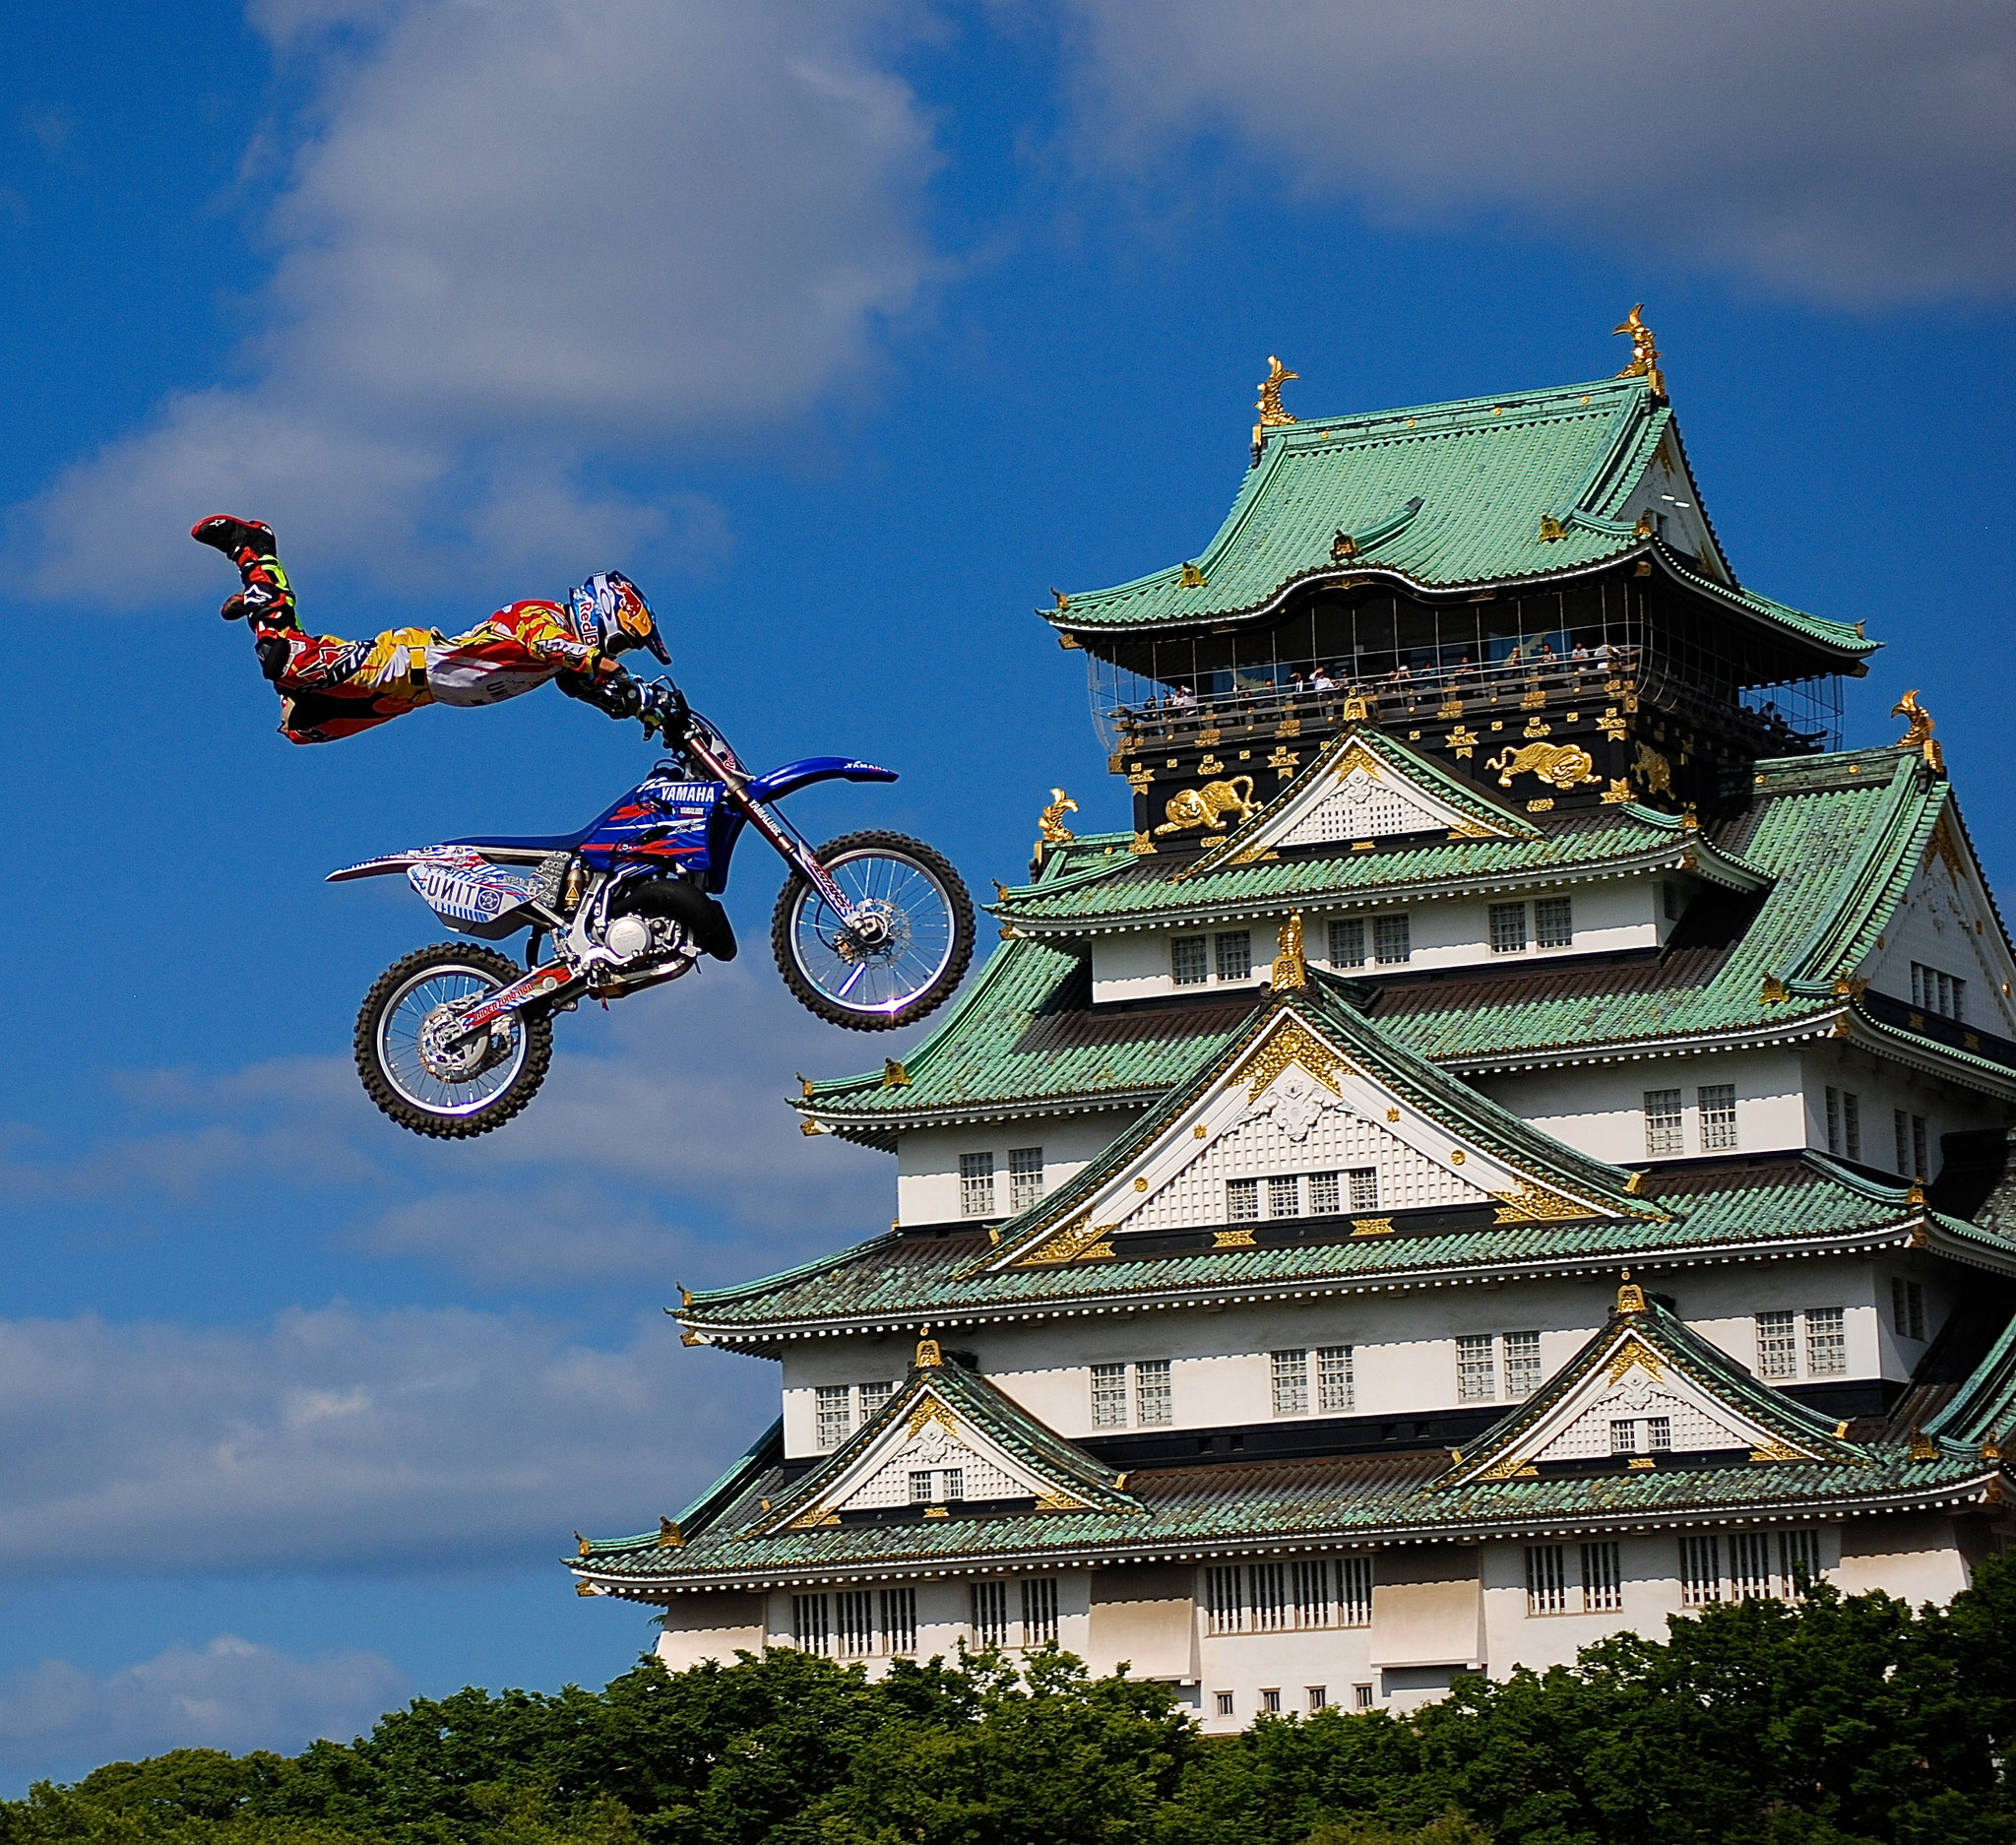 Red Bull X-Fighters World Tour.